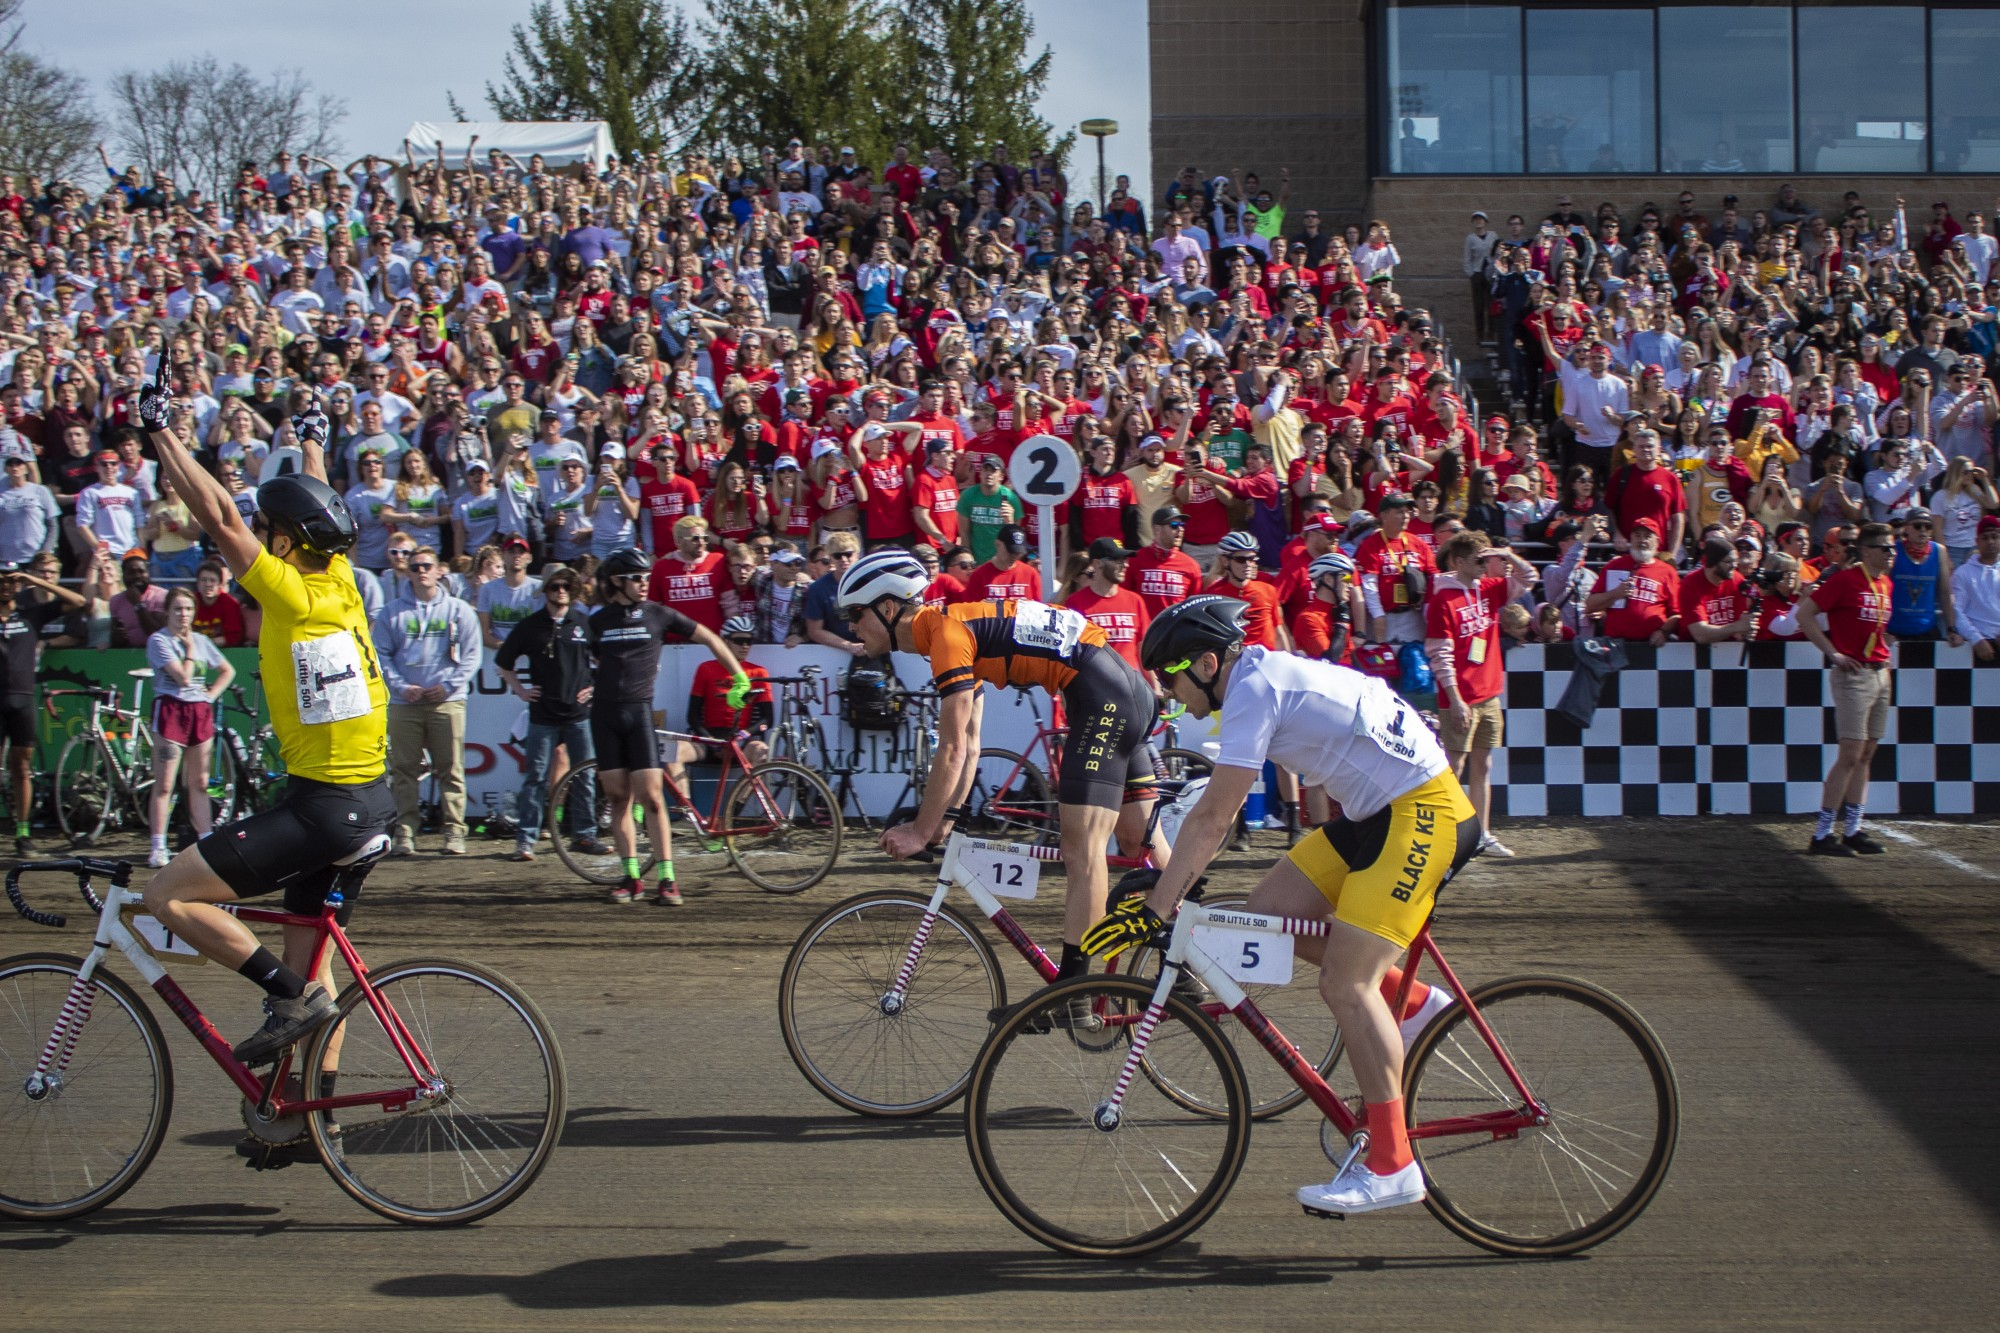 The final rider for Cutters throws his arms up in celebration after crossing the finish line April 13, 2019, at Bill Armstrong Stadium. Little 500 is typically in April, but has been rescheduled to May 26 this year.